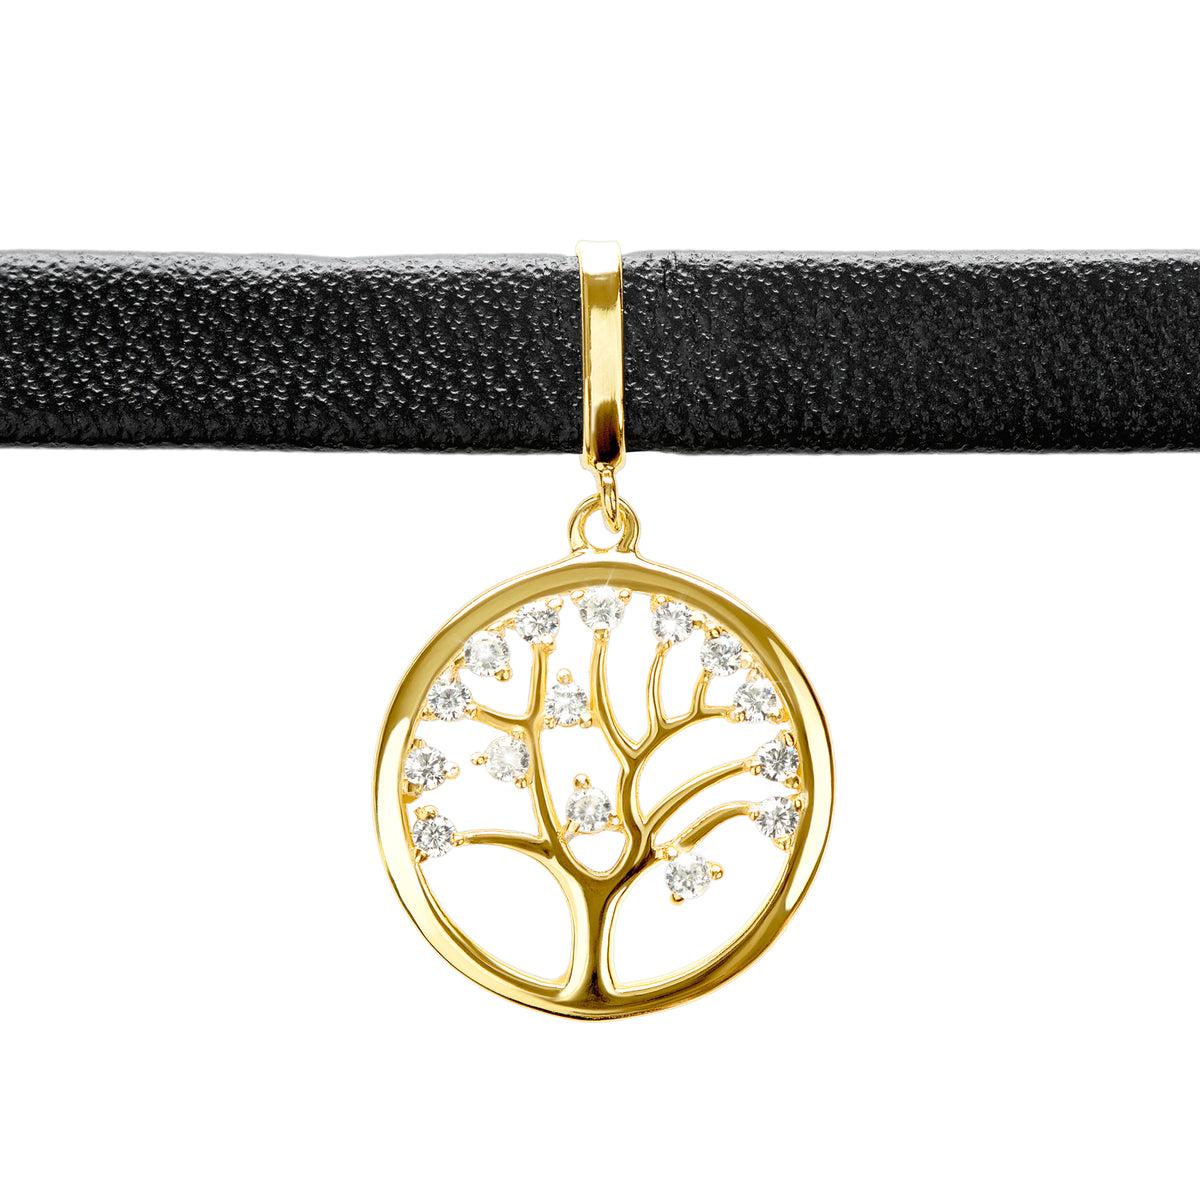 Black Choker Necklace with Tree of Life Pendant - Gold